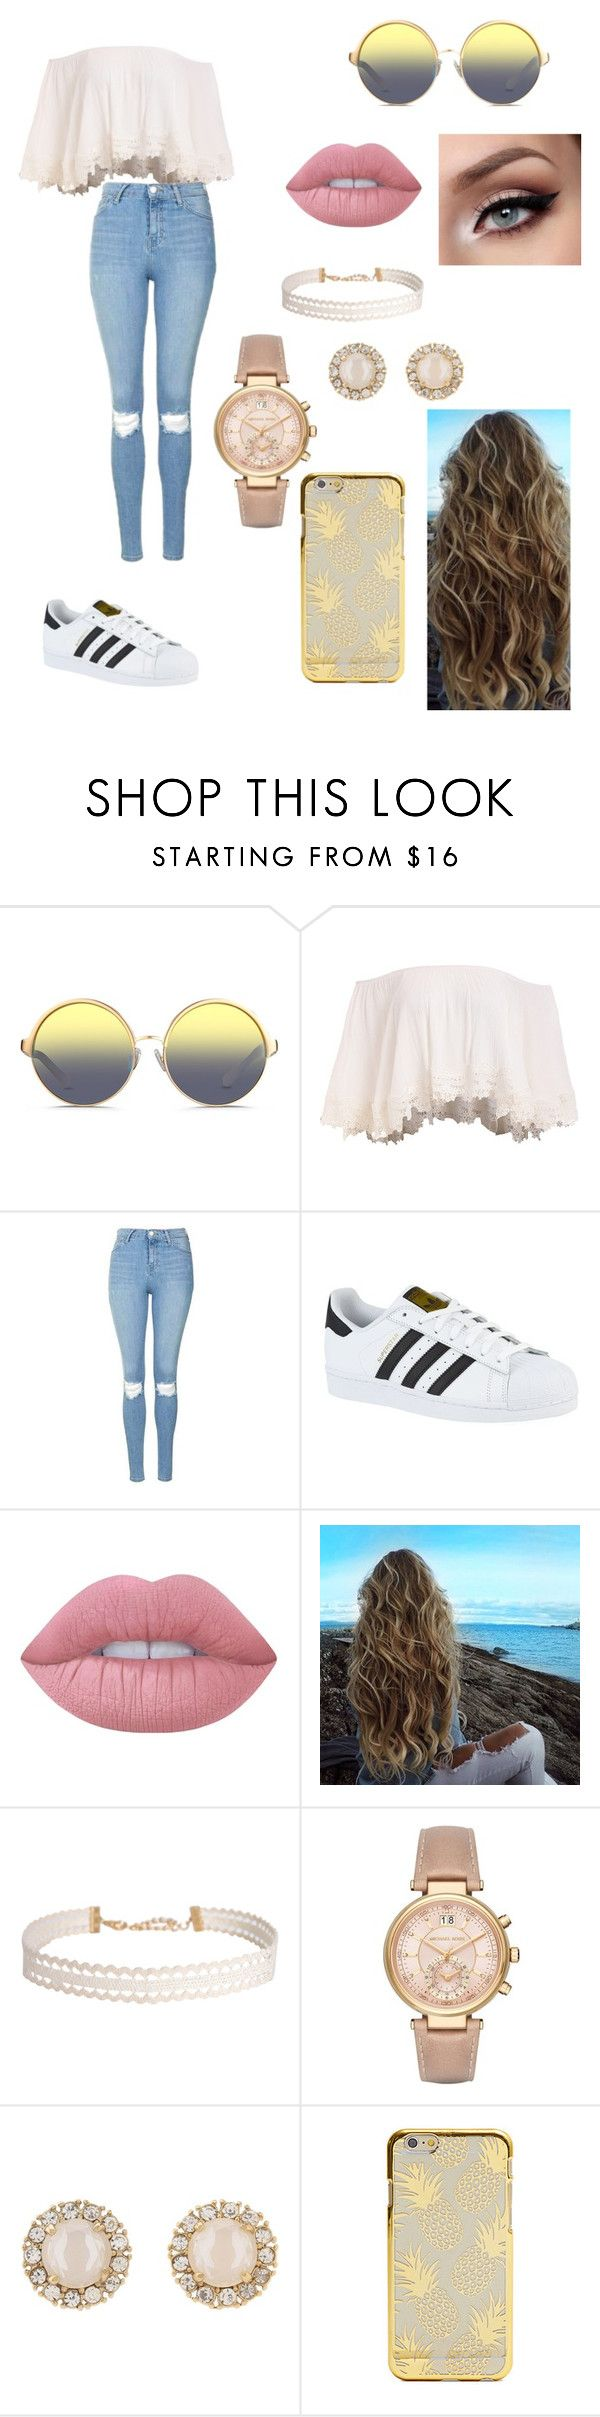 """Untitled #58"" by paigevjacobs on Polyvore featuring Matthew Williamson, Topshop, adidas, Lime Crime, Humble Chic, Michael Kors and Kate Spade"